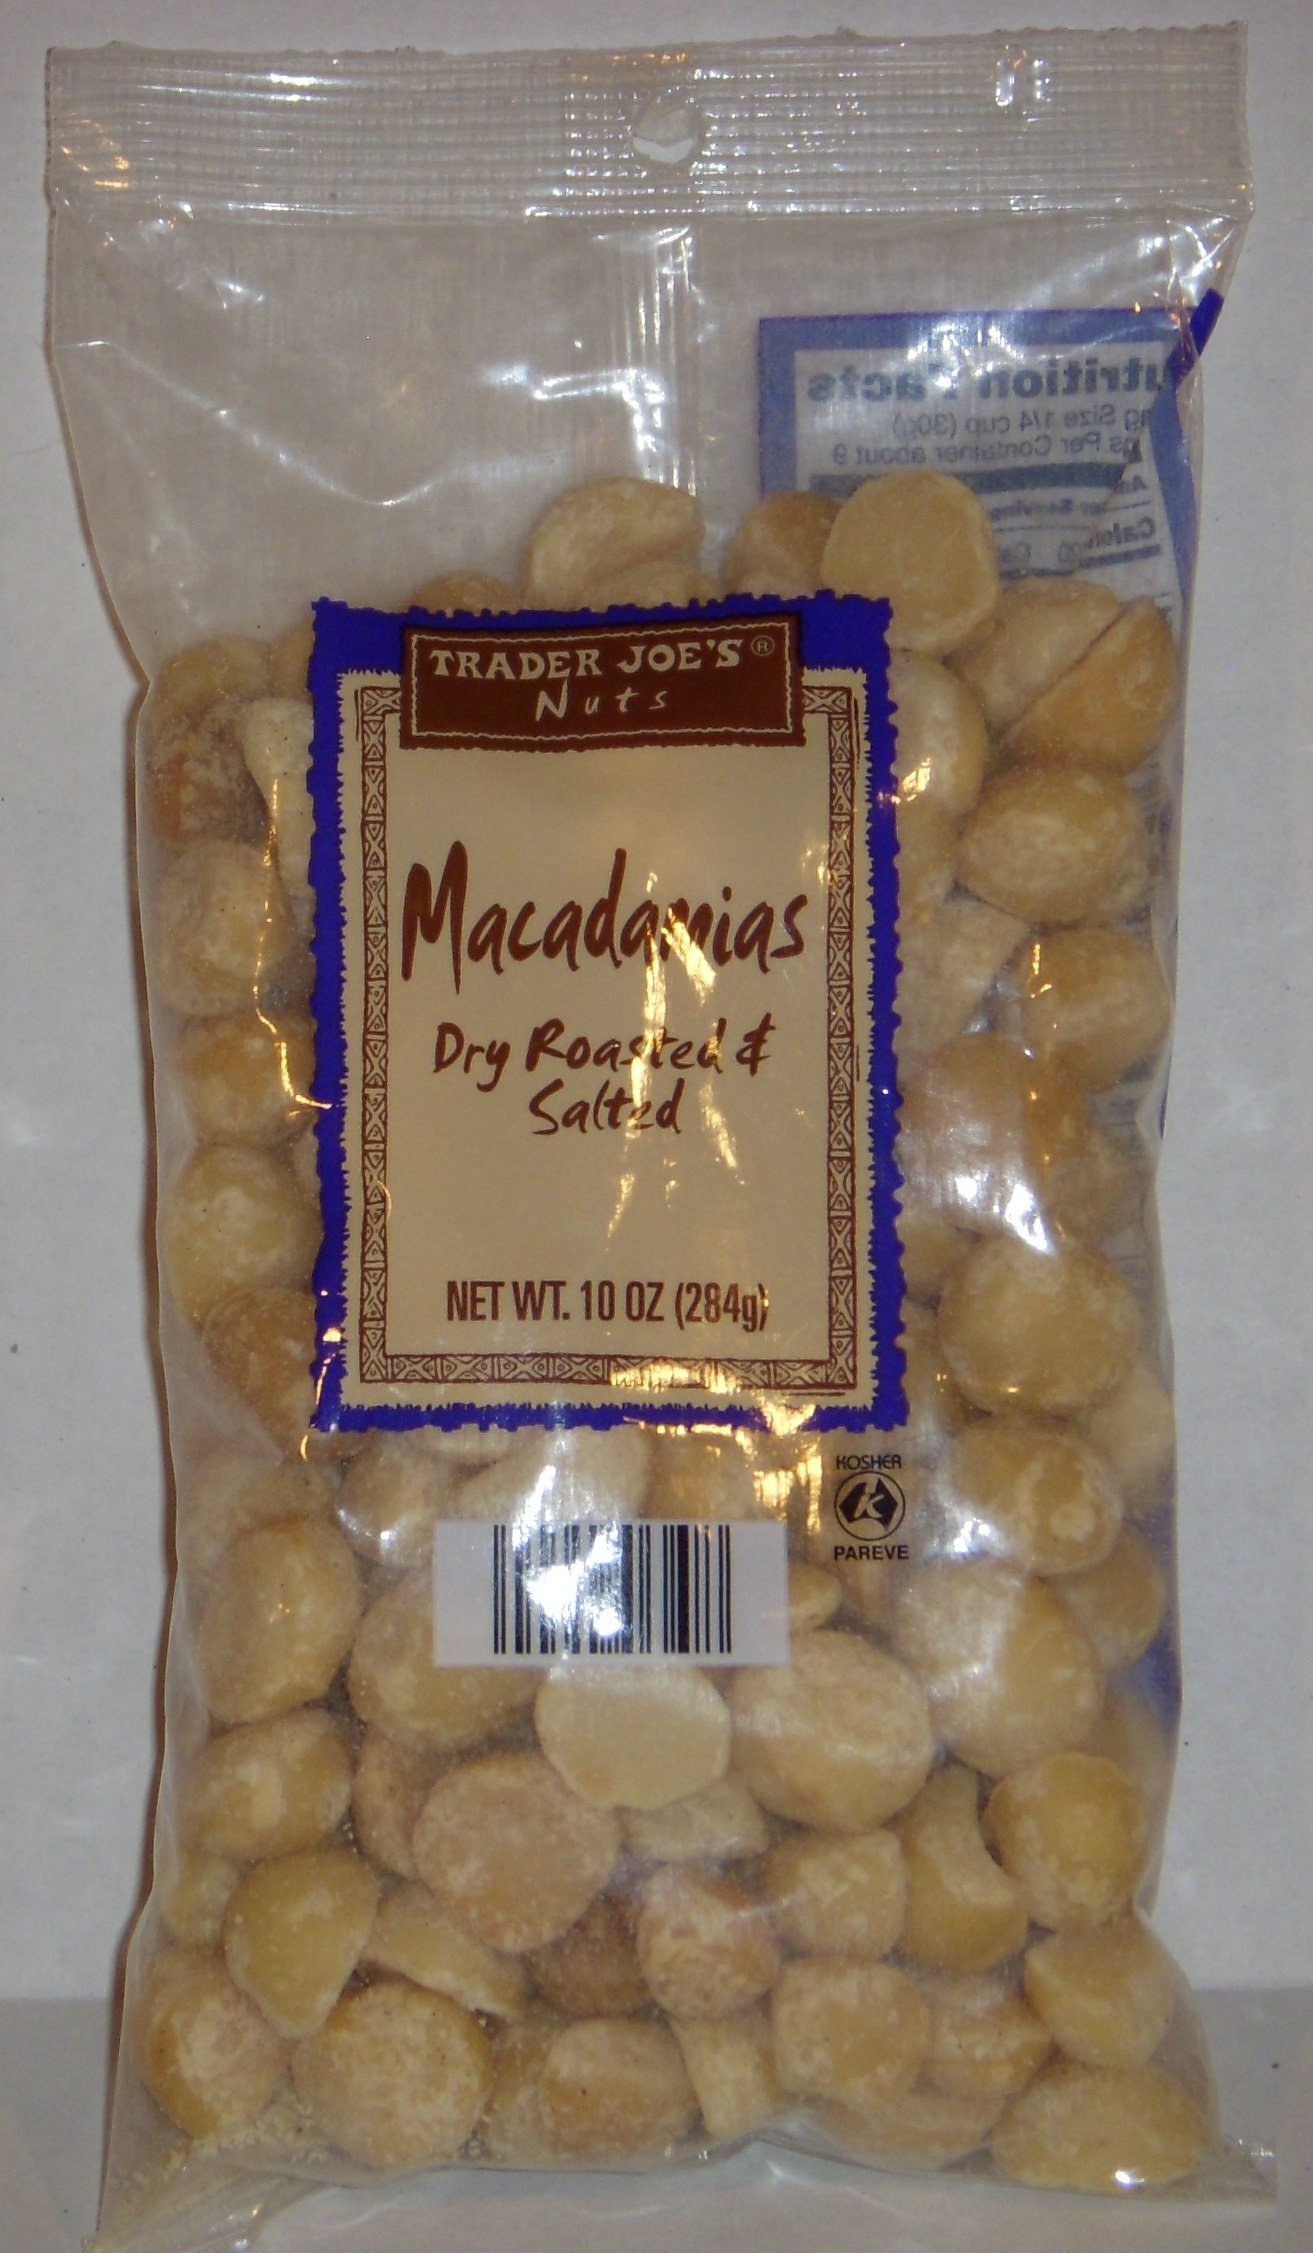 Trader Joe's Macadamias (Dry Roasted and Salted), 10 oz (284g) Bag